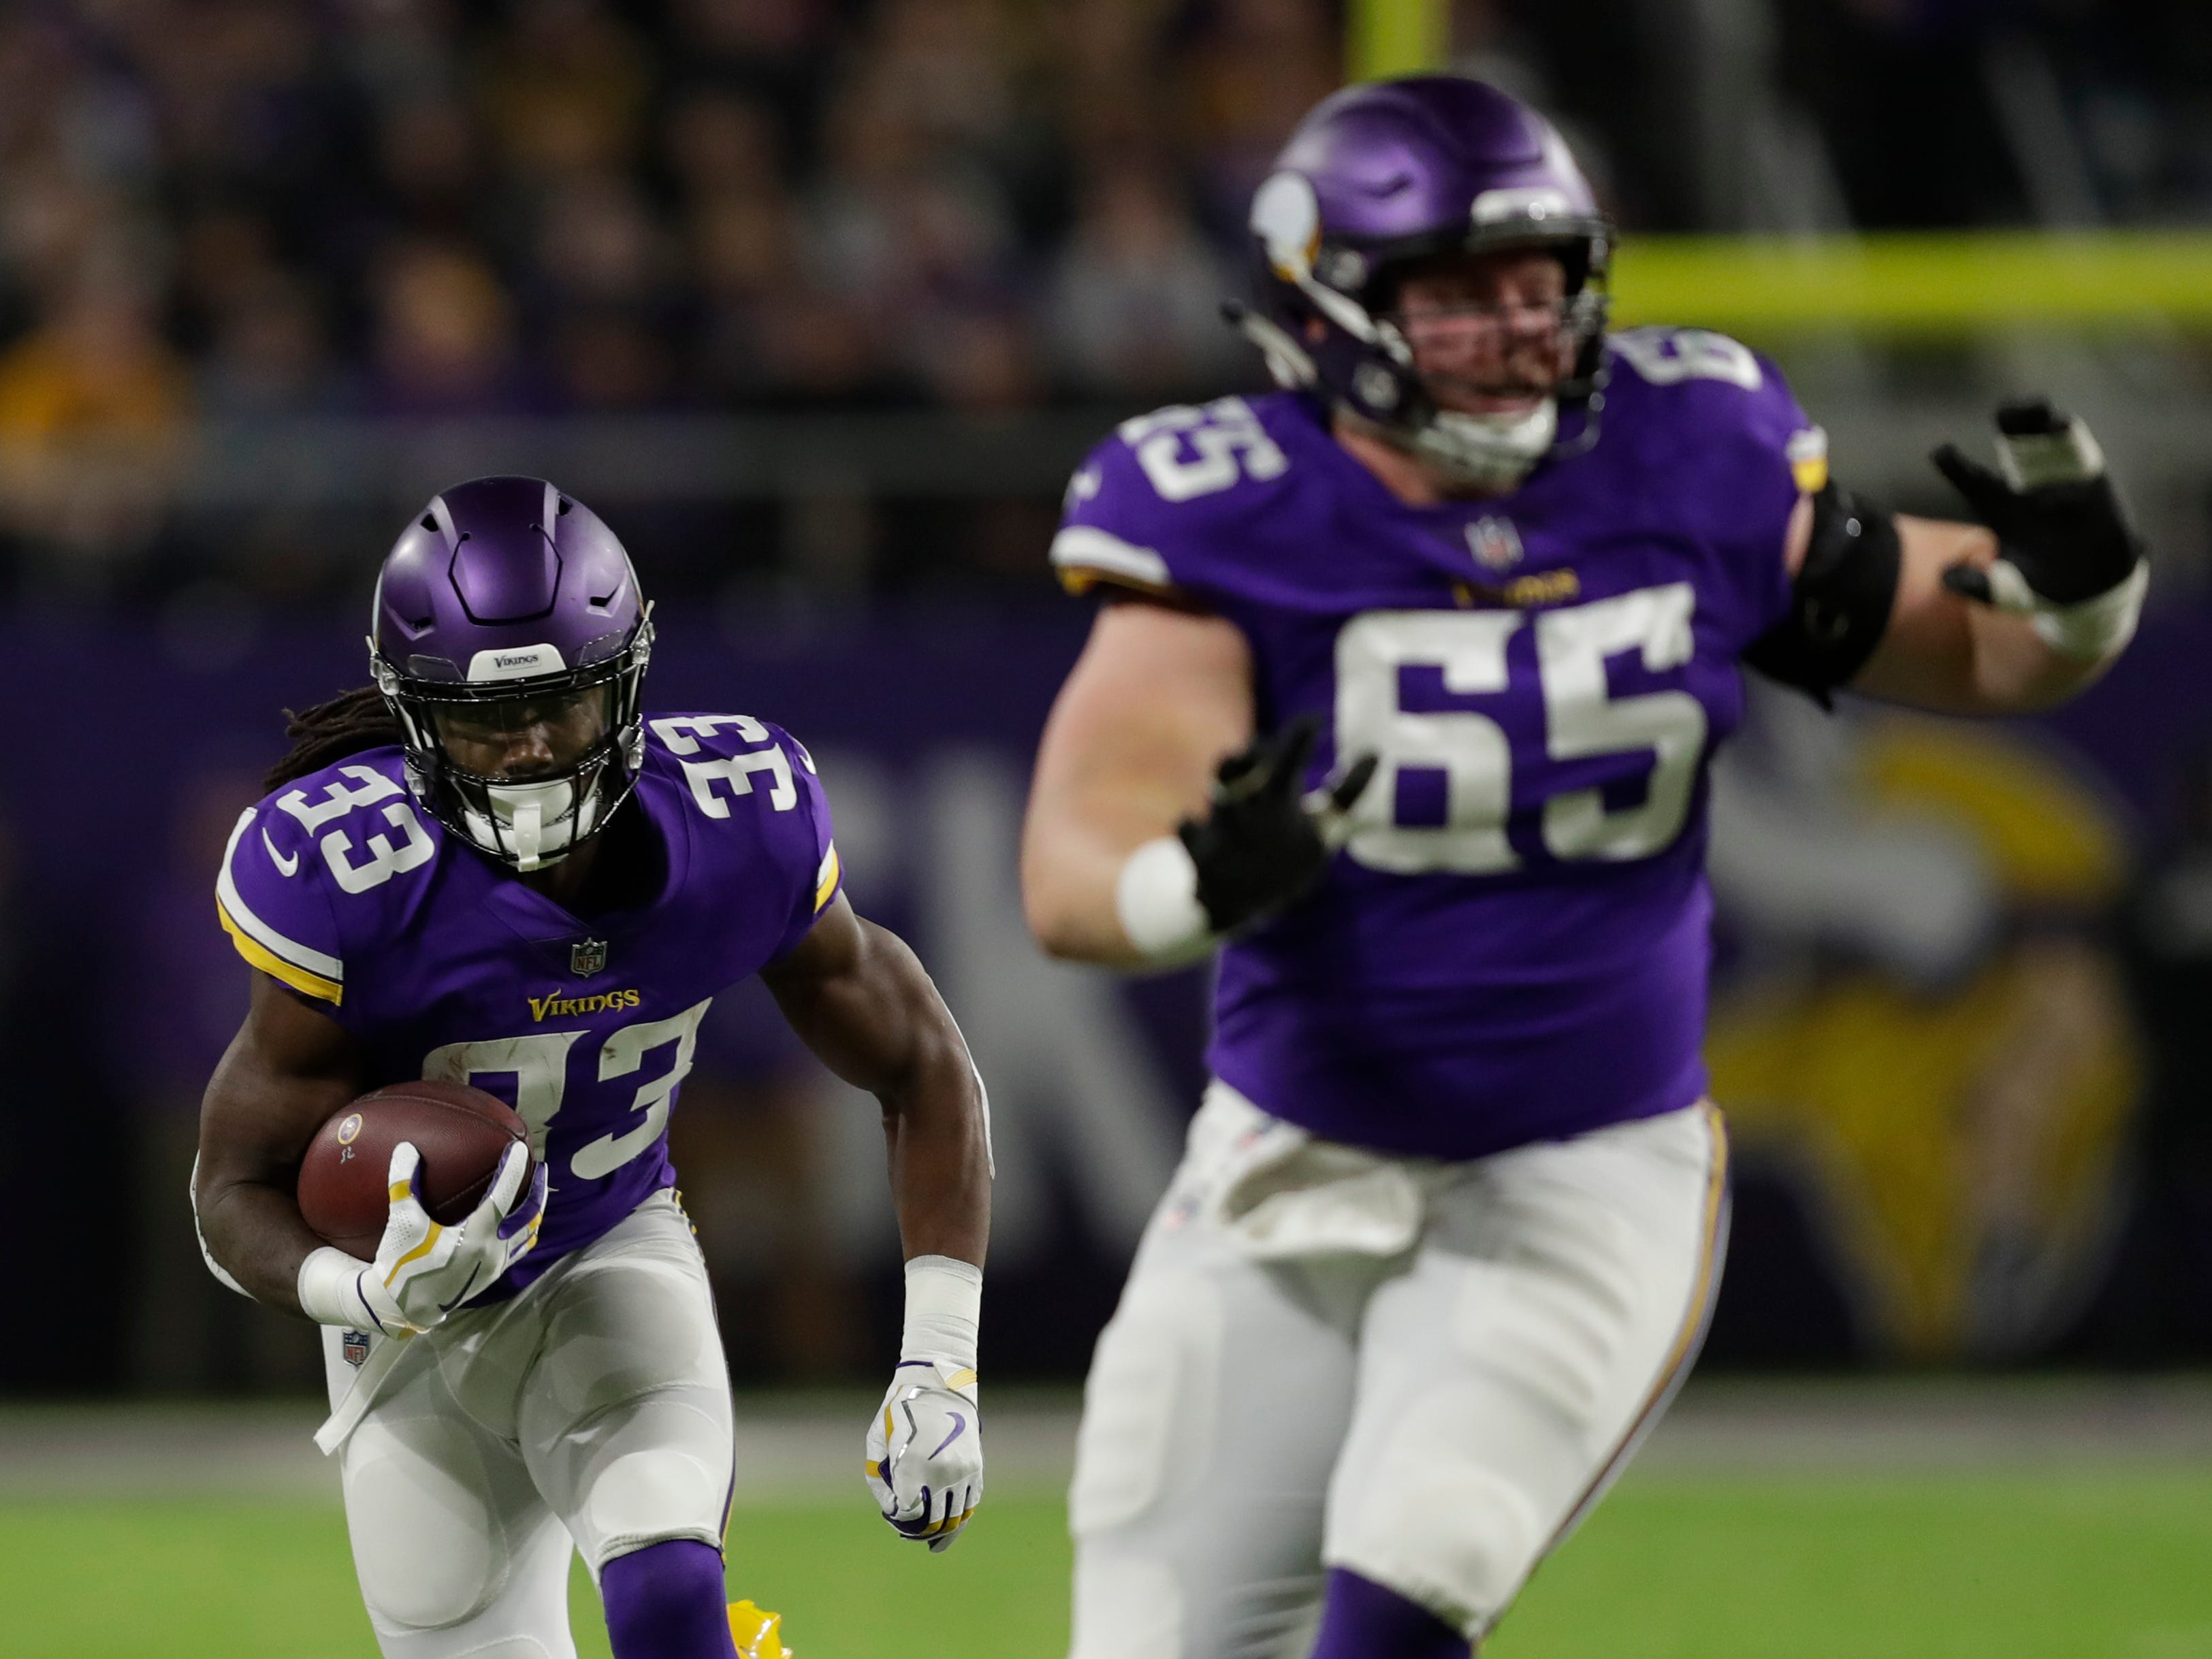 Minnesota Vikings running back Dalvin Cook (33) breaks away for a first quarter against the Green Bay Packers during their football game Sunday, November 25, 2018, at U.S. Bank Stadium in Minneapolis, Minn. 